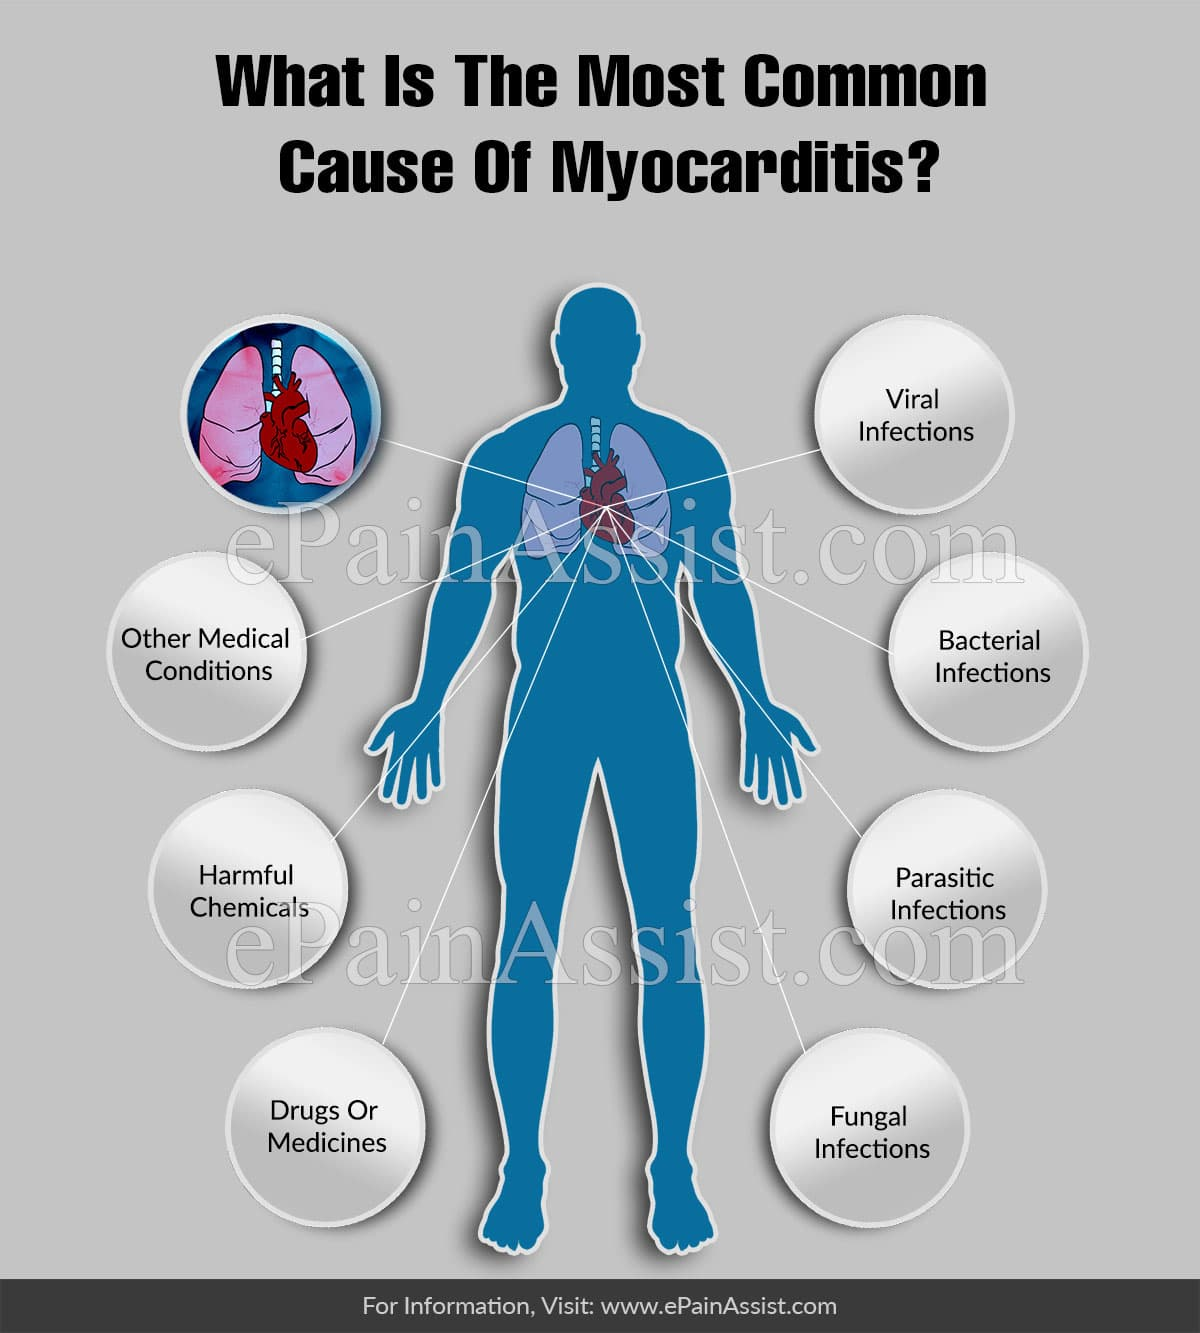 What Is The Most Common Cause Of Myocarditis?